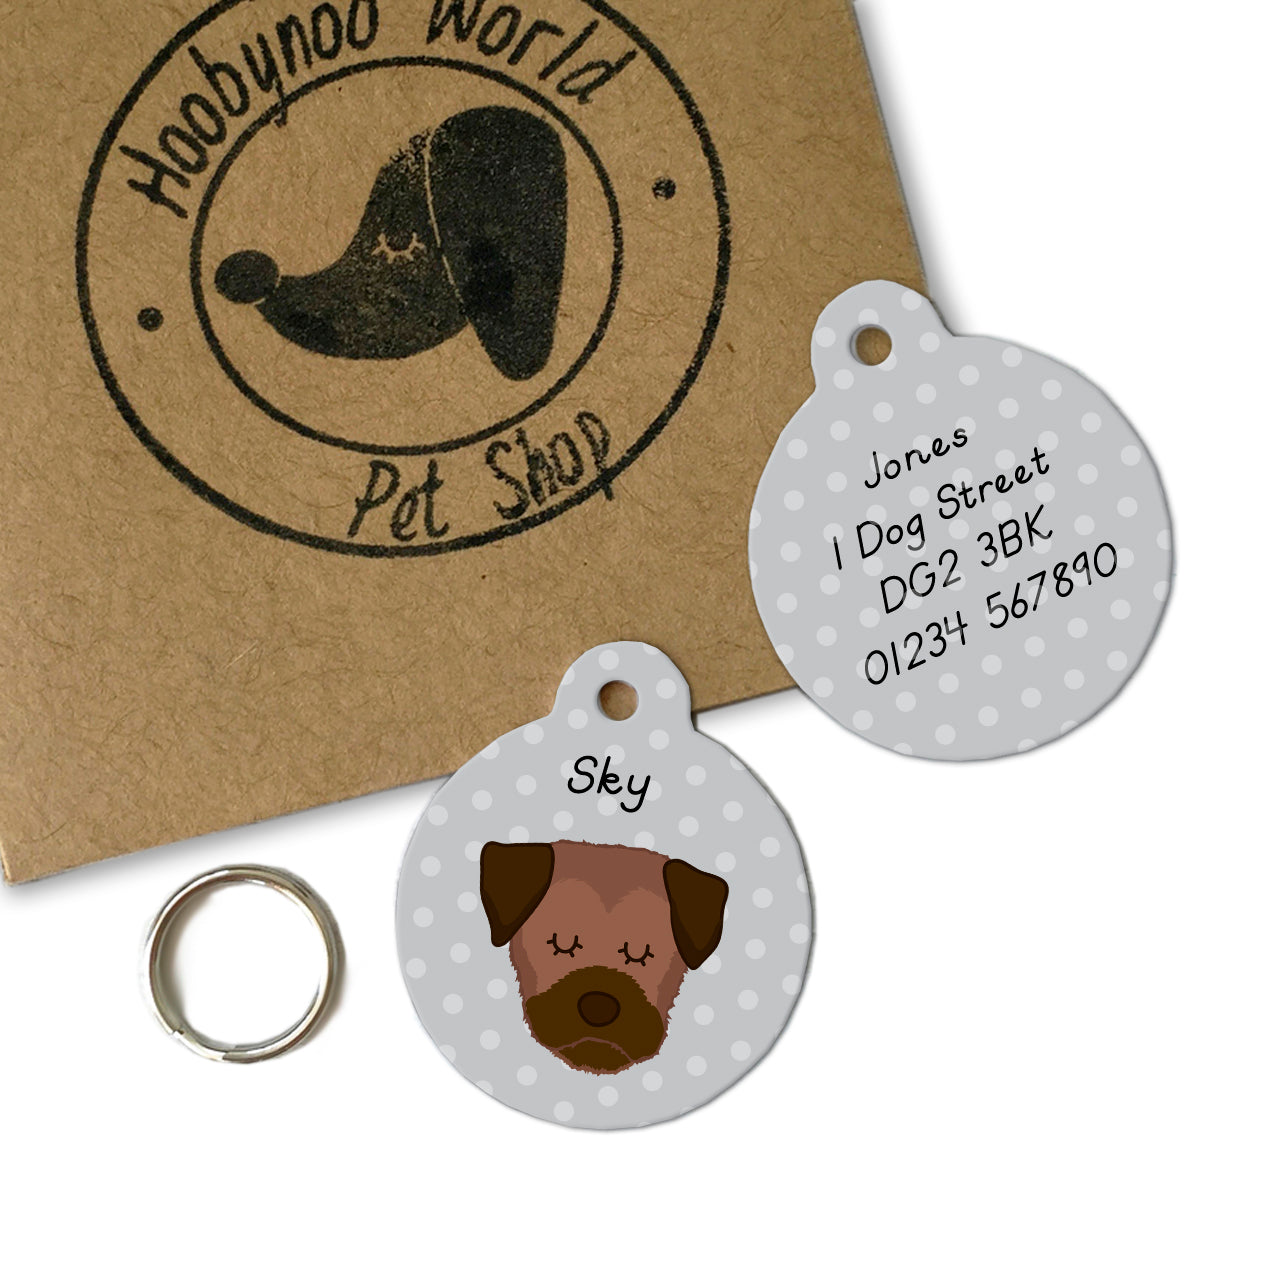 pet tags that comply with UK law